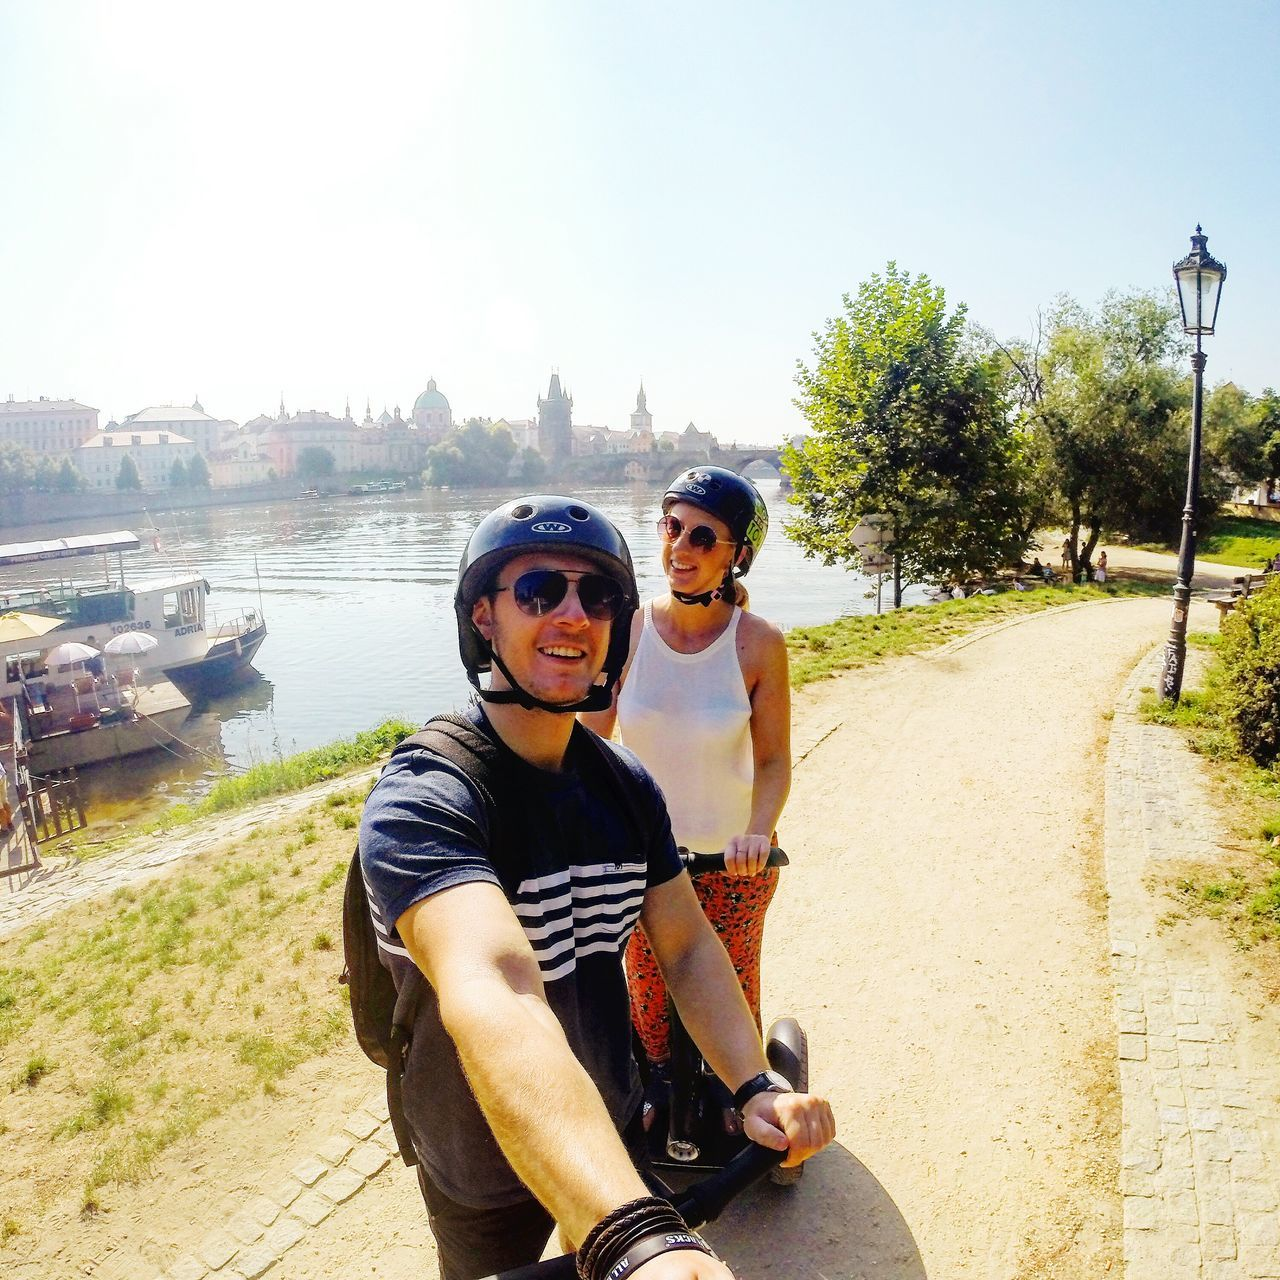 Photographer Better Look Twice From My Point Of View Life Through A Lens Adventure Buddies Taking Photos The Tourist Taking Pictures Panoramic View Panoramic Photography Prague Segway Segway Ride Gopro Sunshine Sunset_collection Sunshine Day Prague Czech Republic Czech Republic Traveling Travel Photography Having Fun Learn & Shoot: Working To A Brief My Year My View